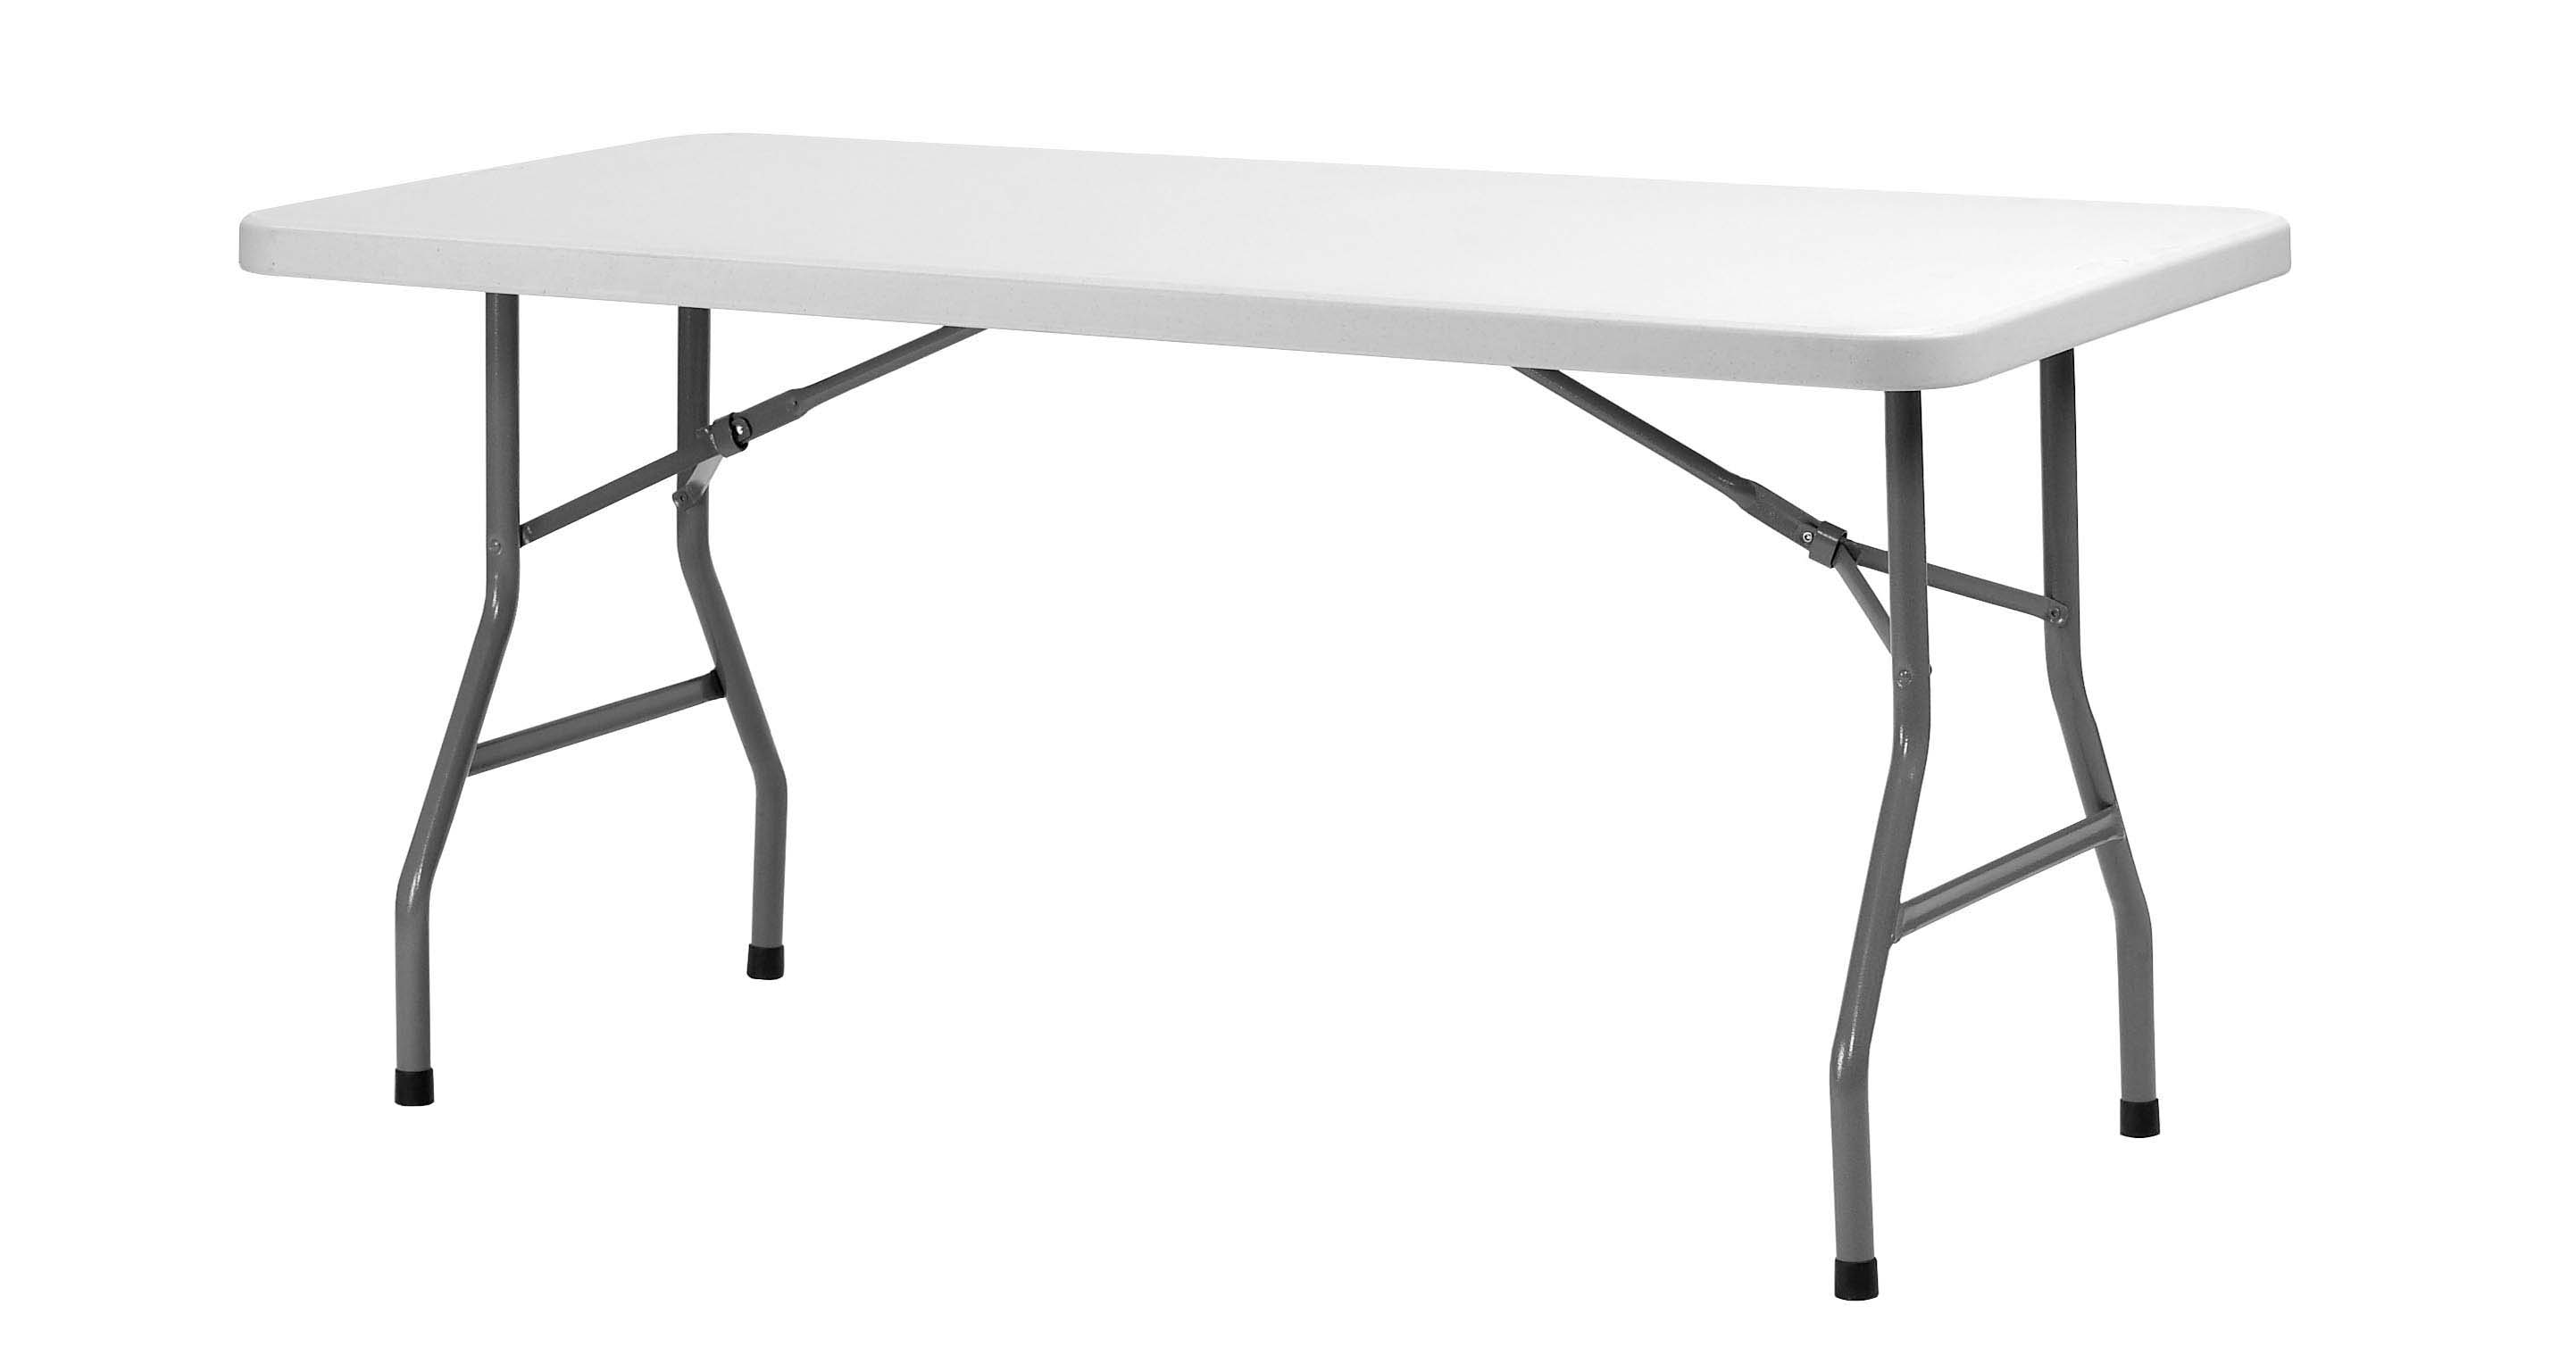 Table pliante rectangulaire hdpe 182x76cm comparer les prix de table pliante rectangulaire hdpe for Pietement de table pliante